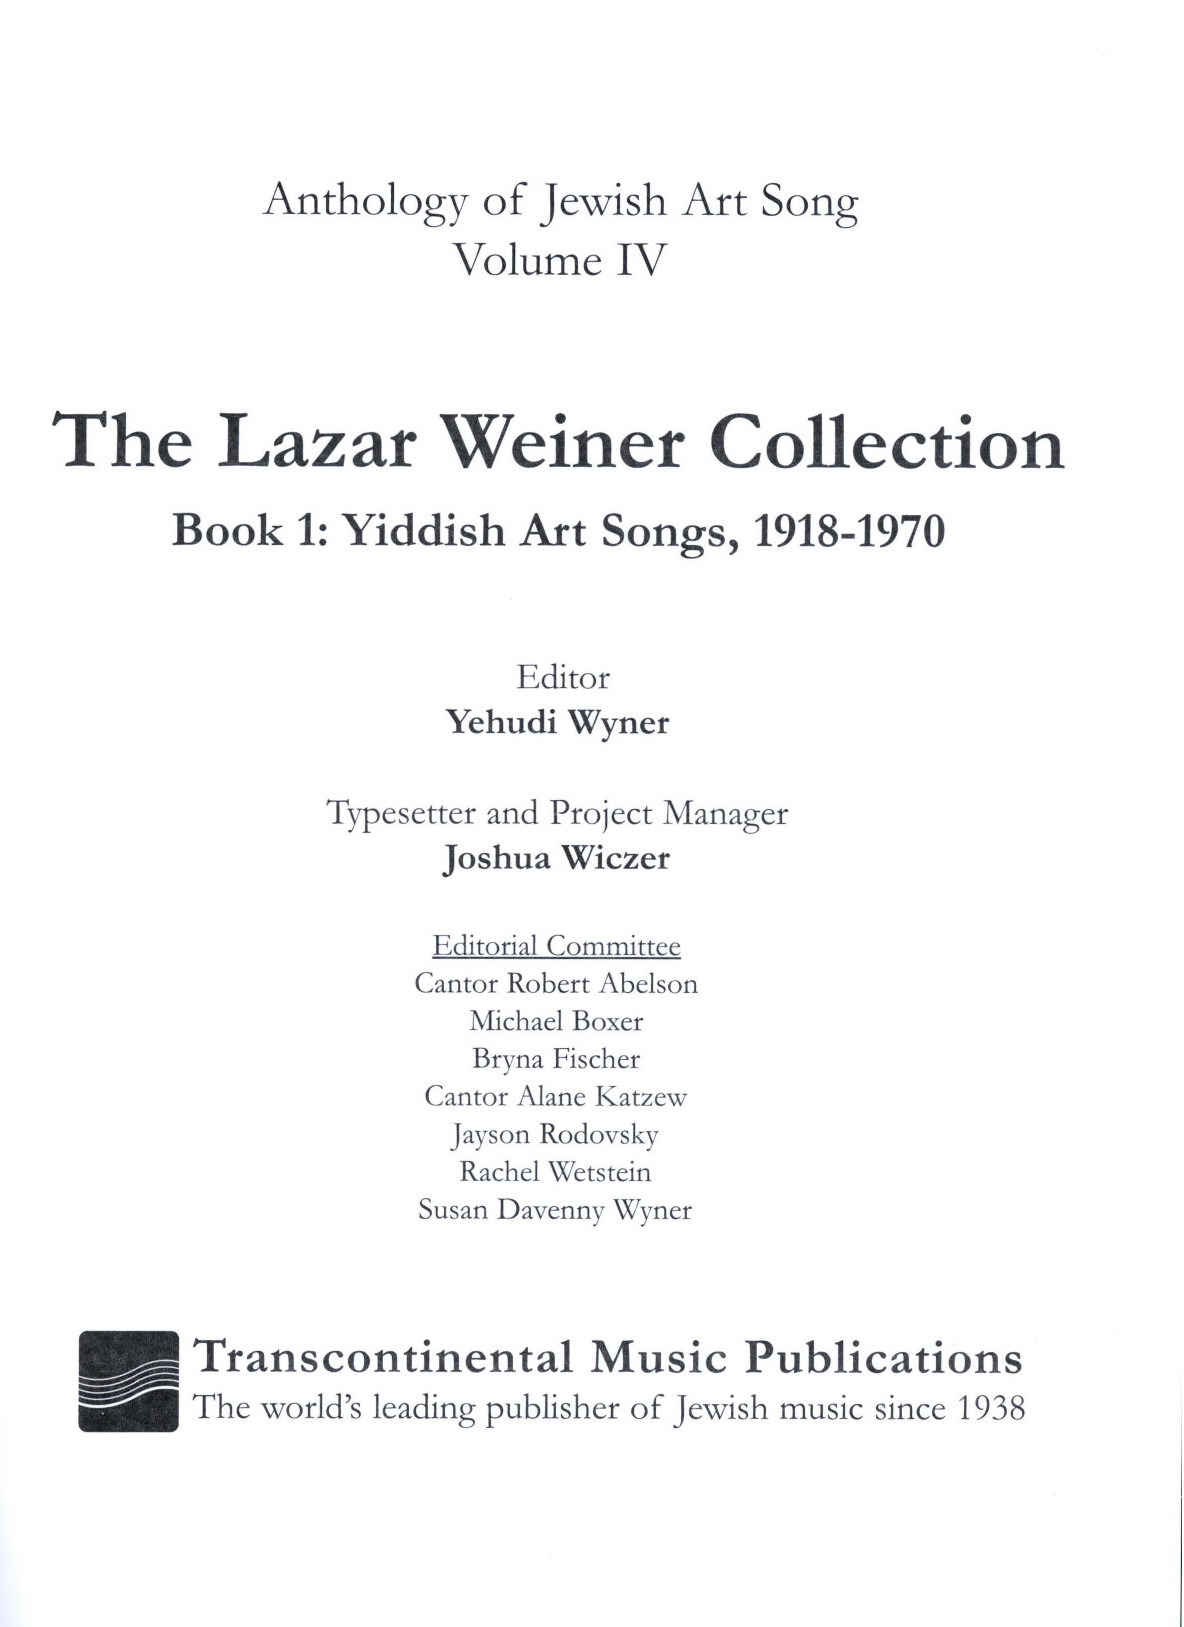 The Lazar Weiner Collection - Book 1: Yiddish Art Songs, 1918-1970 Sheet Music